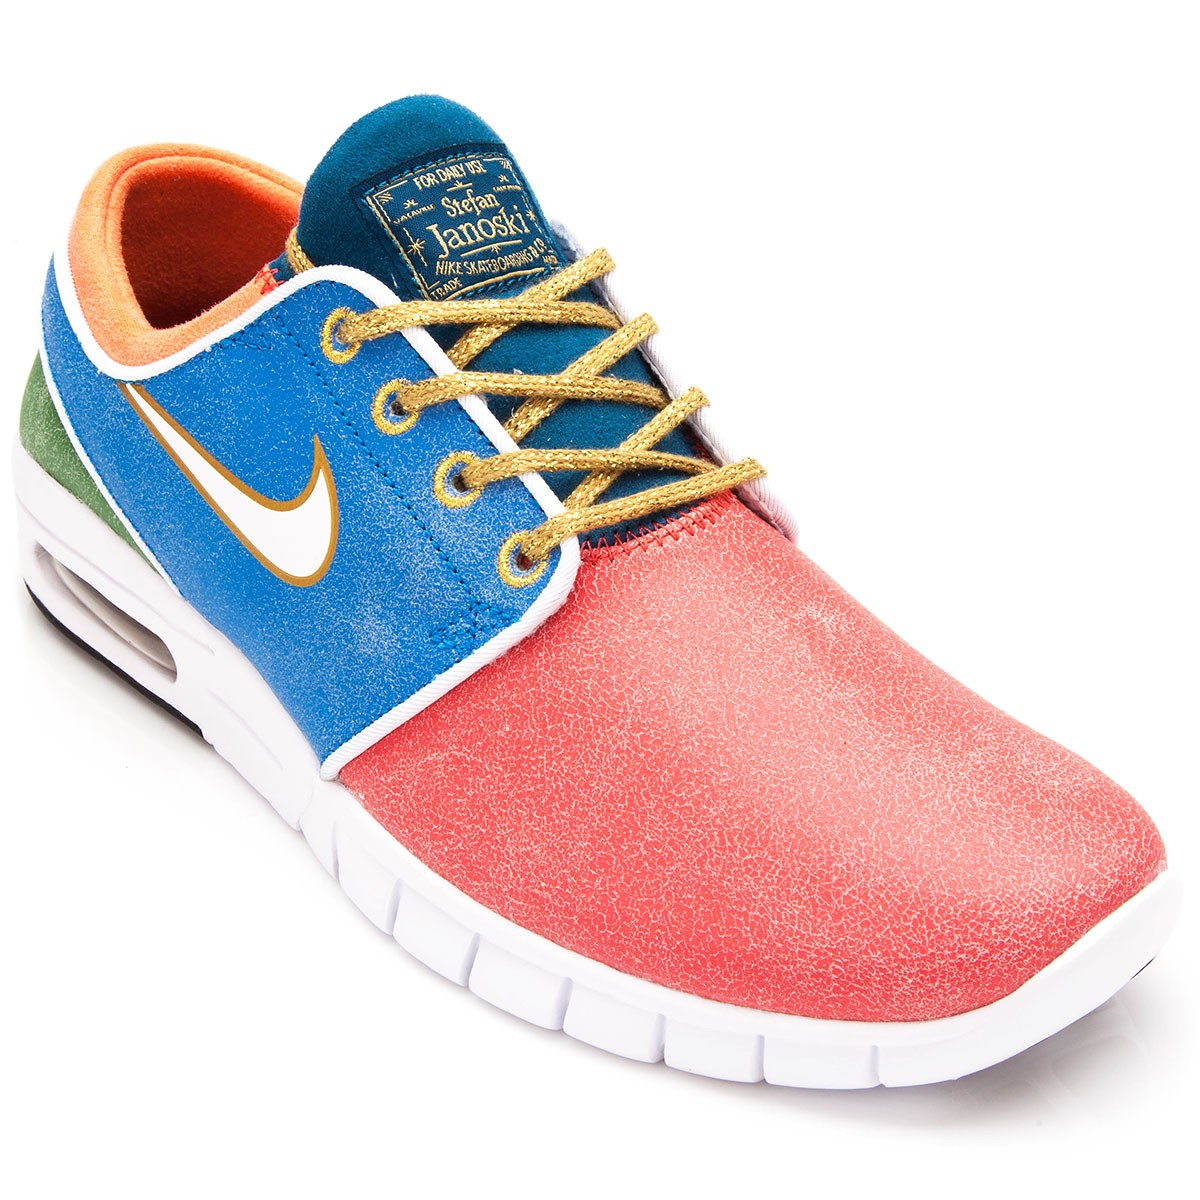 Stefan Janoski Nike Max Shoes